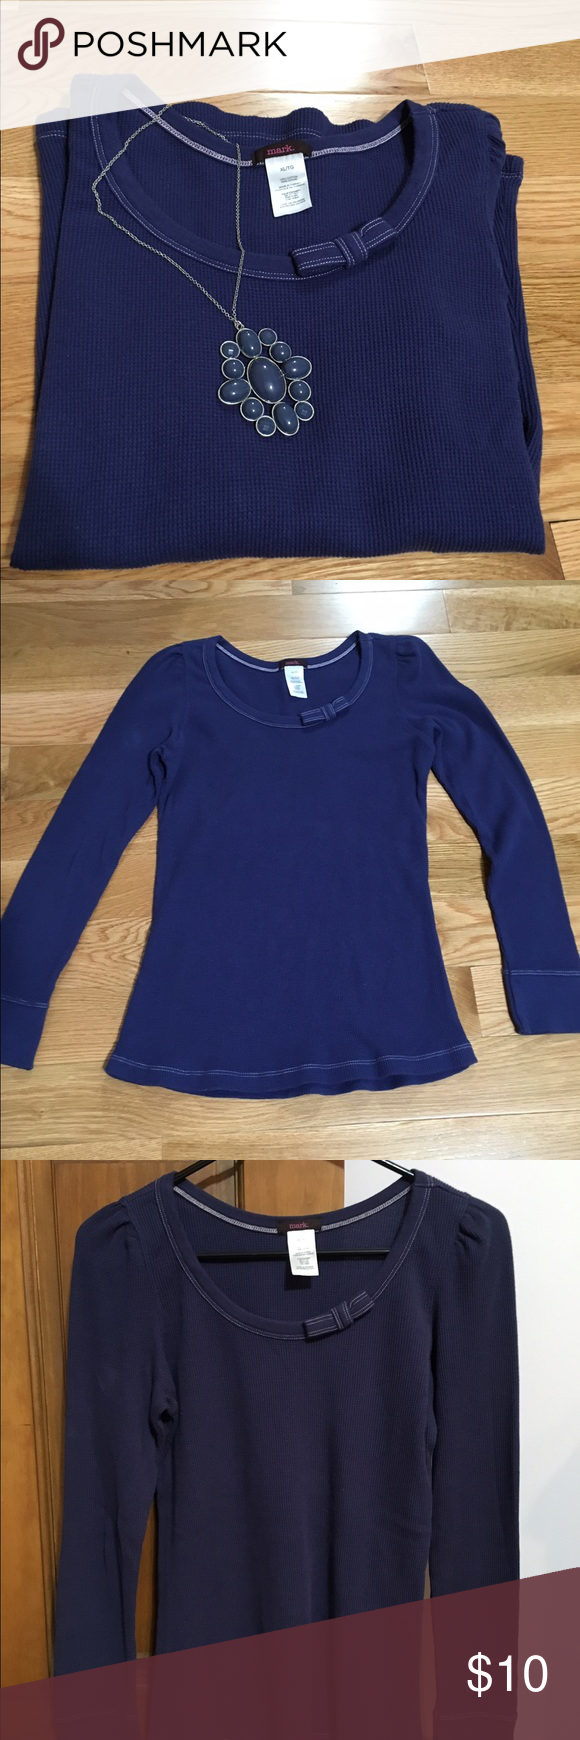 Mark Shirt This is a junior sized XL navy blue shirt by Mark (Avon).  It has never been worn because I wear a woman's XL and needless to say it did not fit.  It is a darling shirt with a bow on the collar. Avon Tops